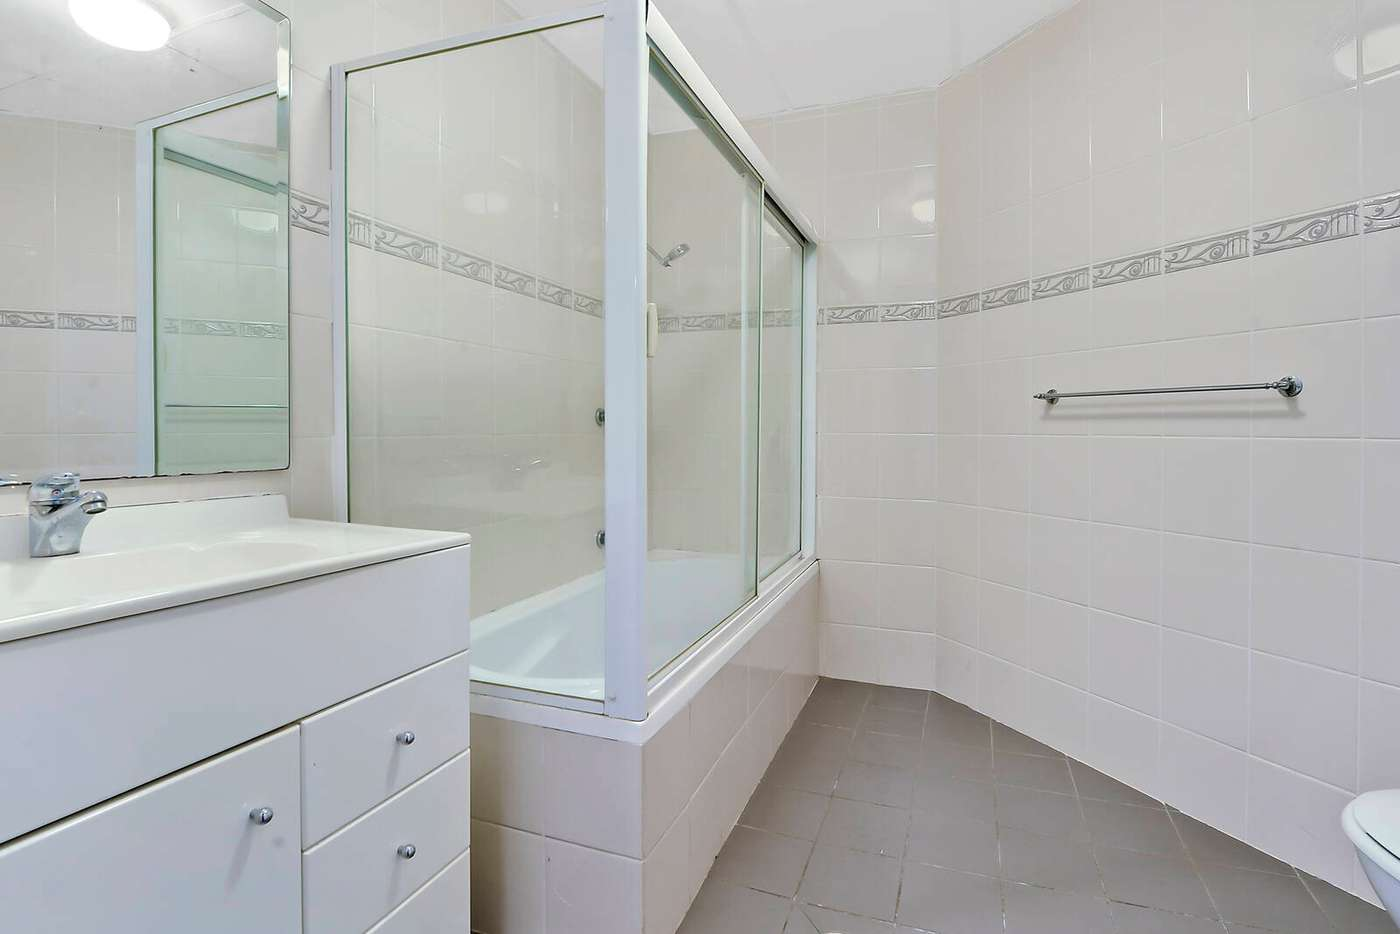 Fifth view of Homely apartment listing, 20/6-8 College Crescent, Hornsby NSW 2077